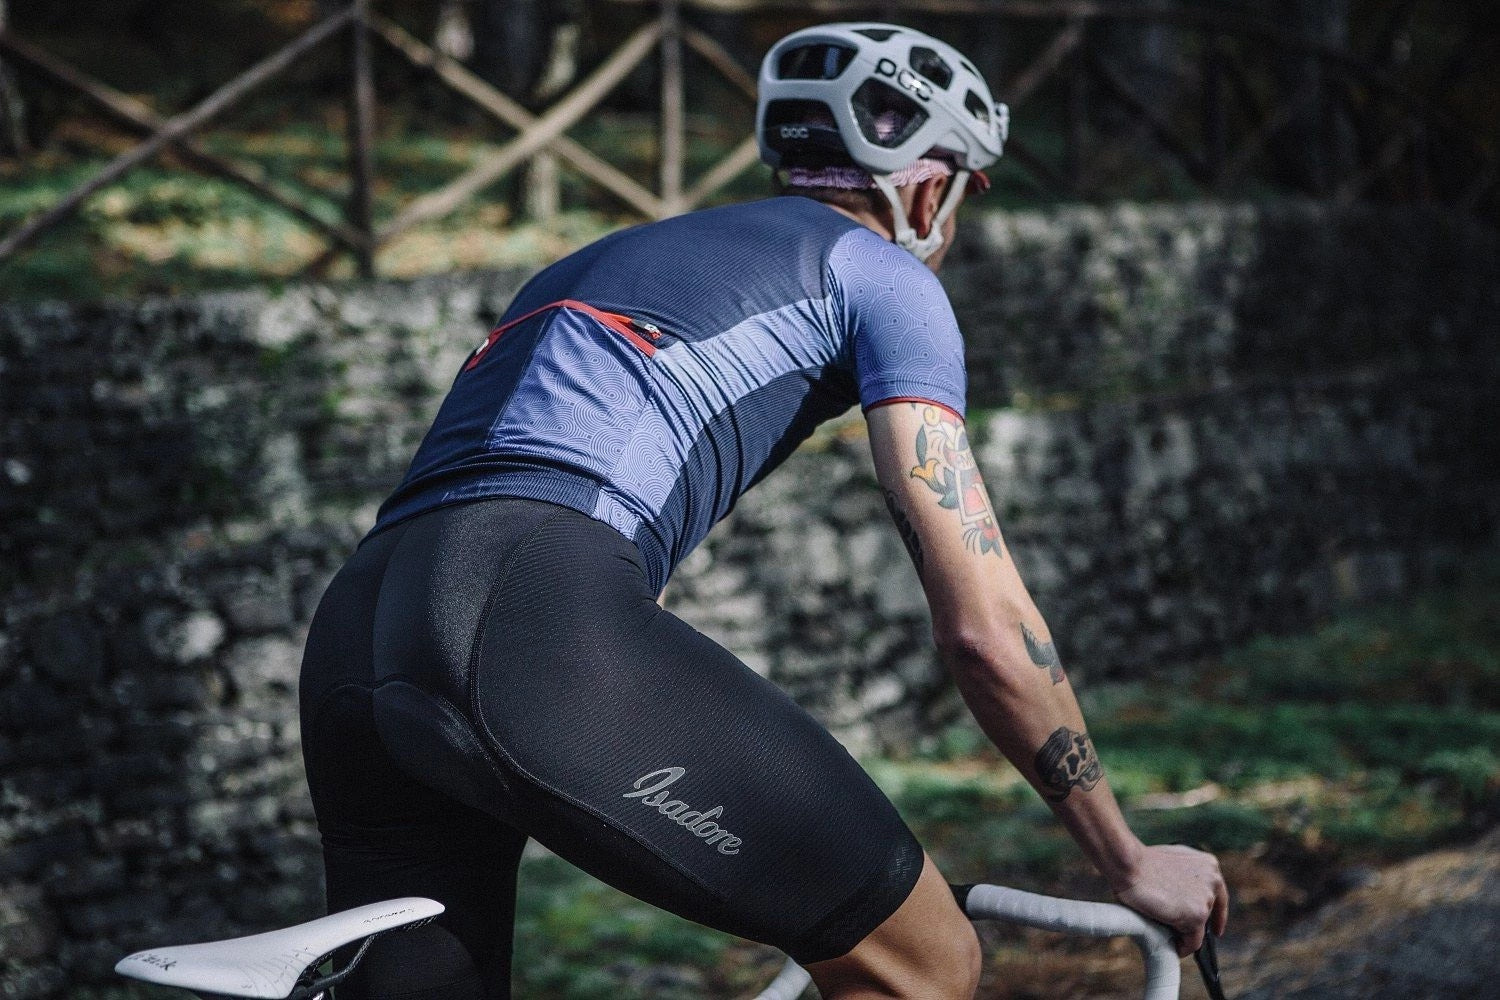 Climbers Bib Shorts for Hot Weather